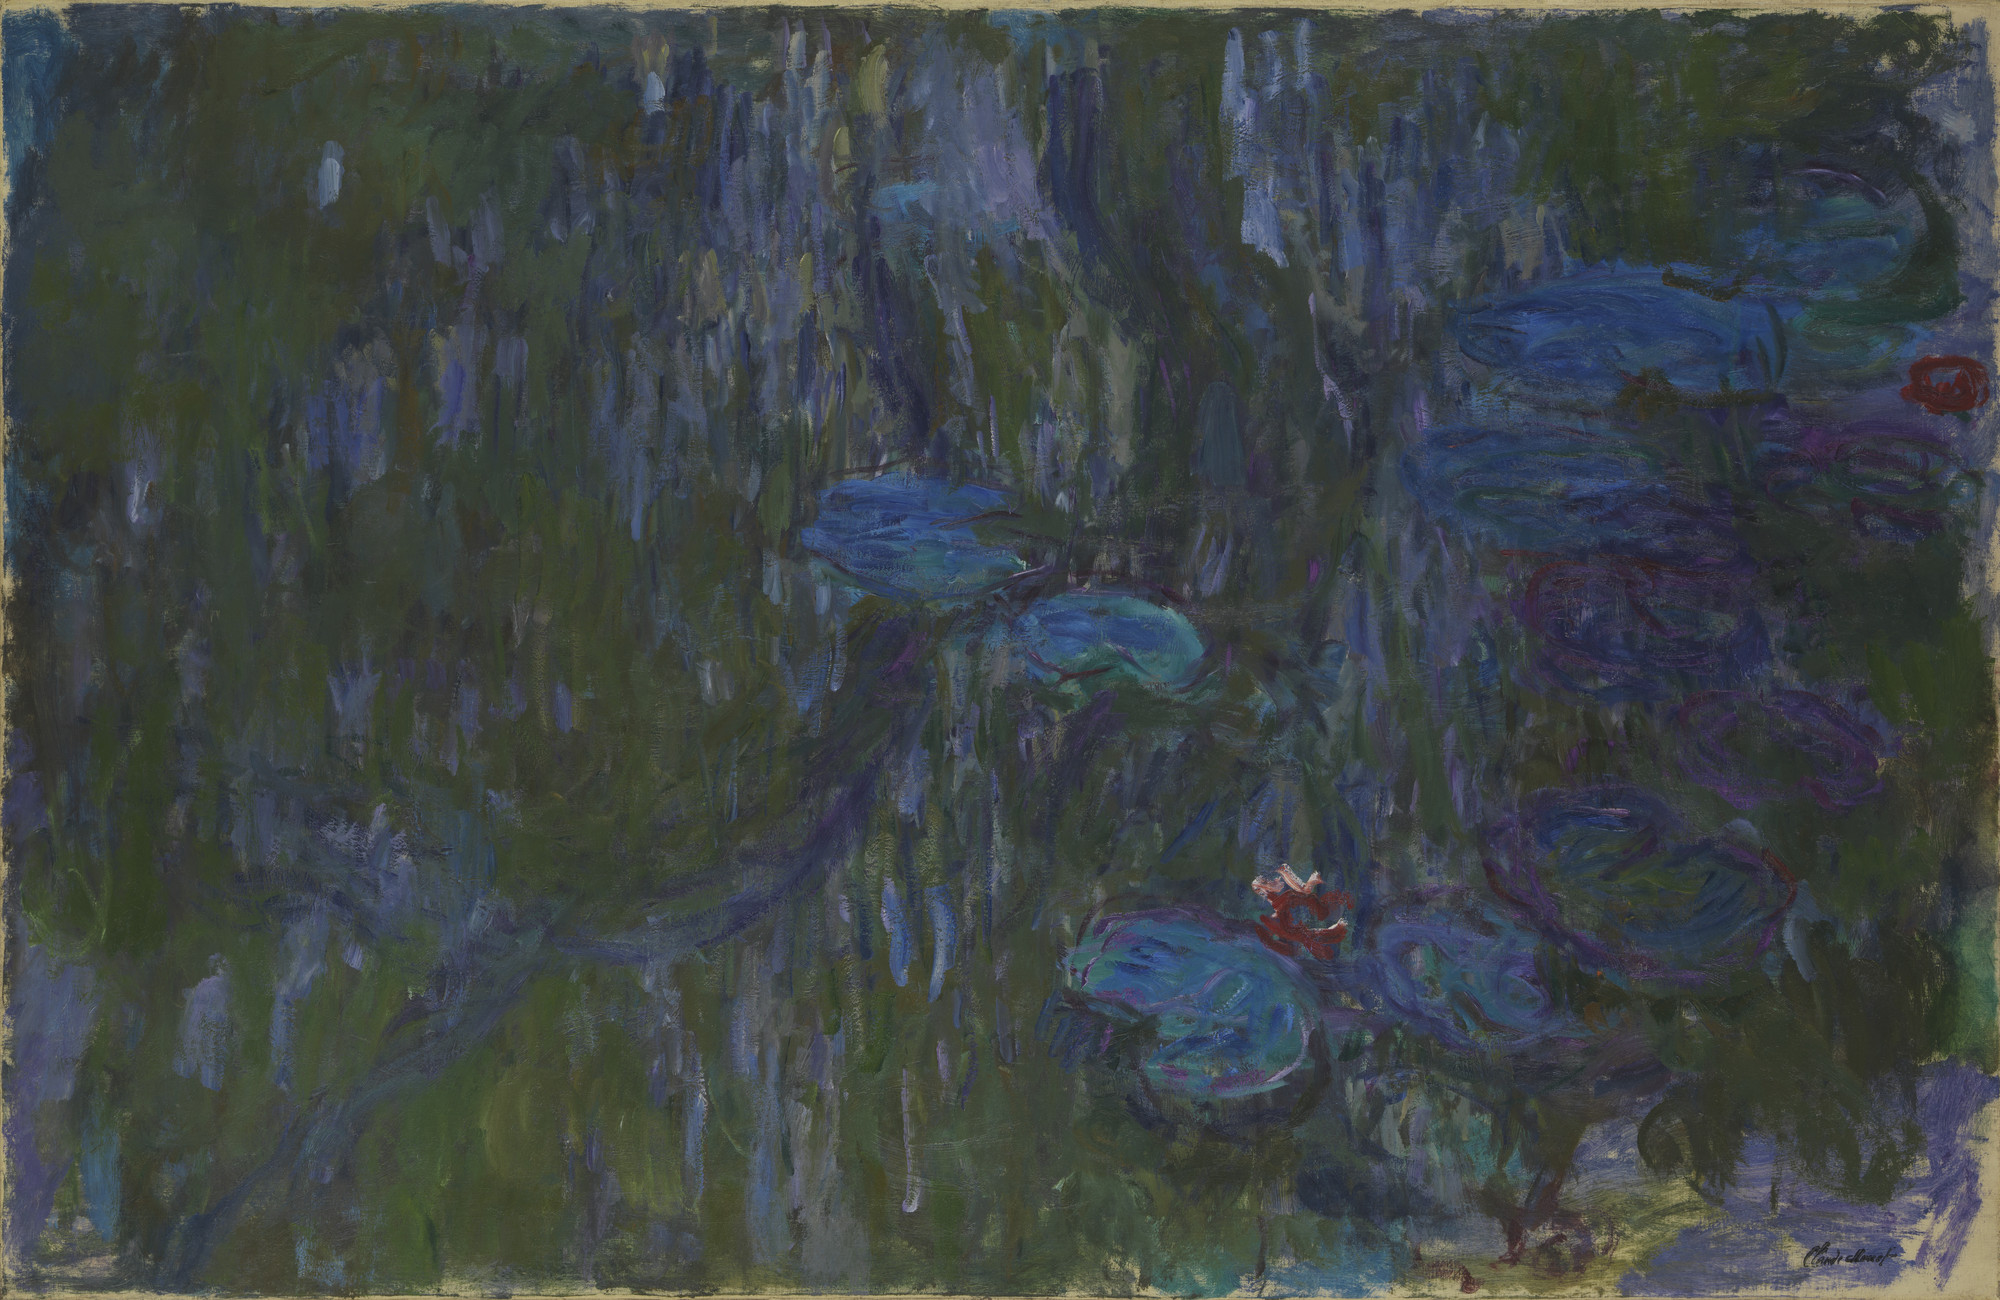 "Claude Monet. Water Lilies, Reflections of Weeping Willows. 1914–1926. Oil on canvas. 51 1/4"" x 78 3/4"" (130.2 x 200 cm). Private collection. Image © The Metropolitan Museum of Art"